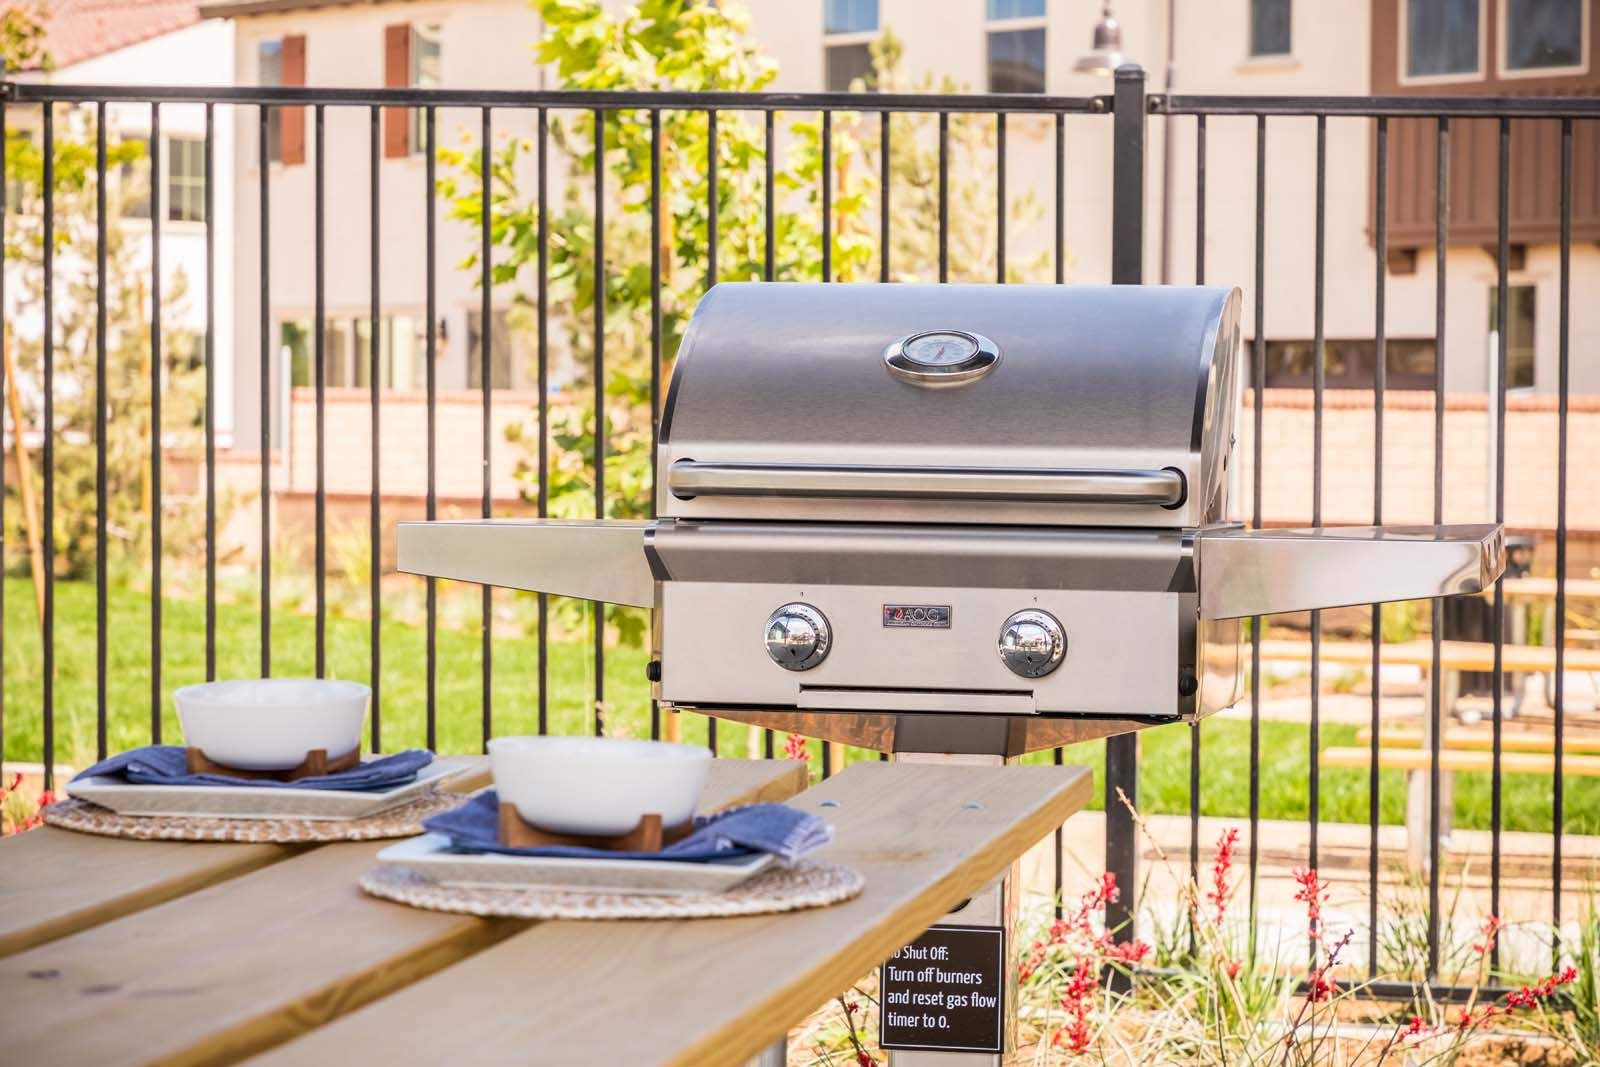 Barbecue at Cherry Park | New Haven in Ontario Ranch, CA | Brookfield Residential